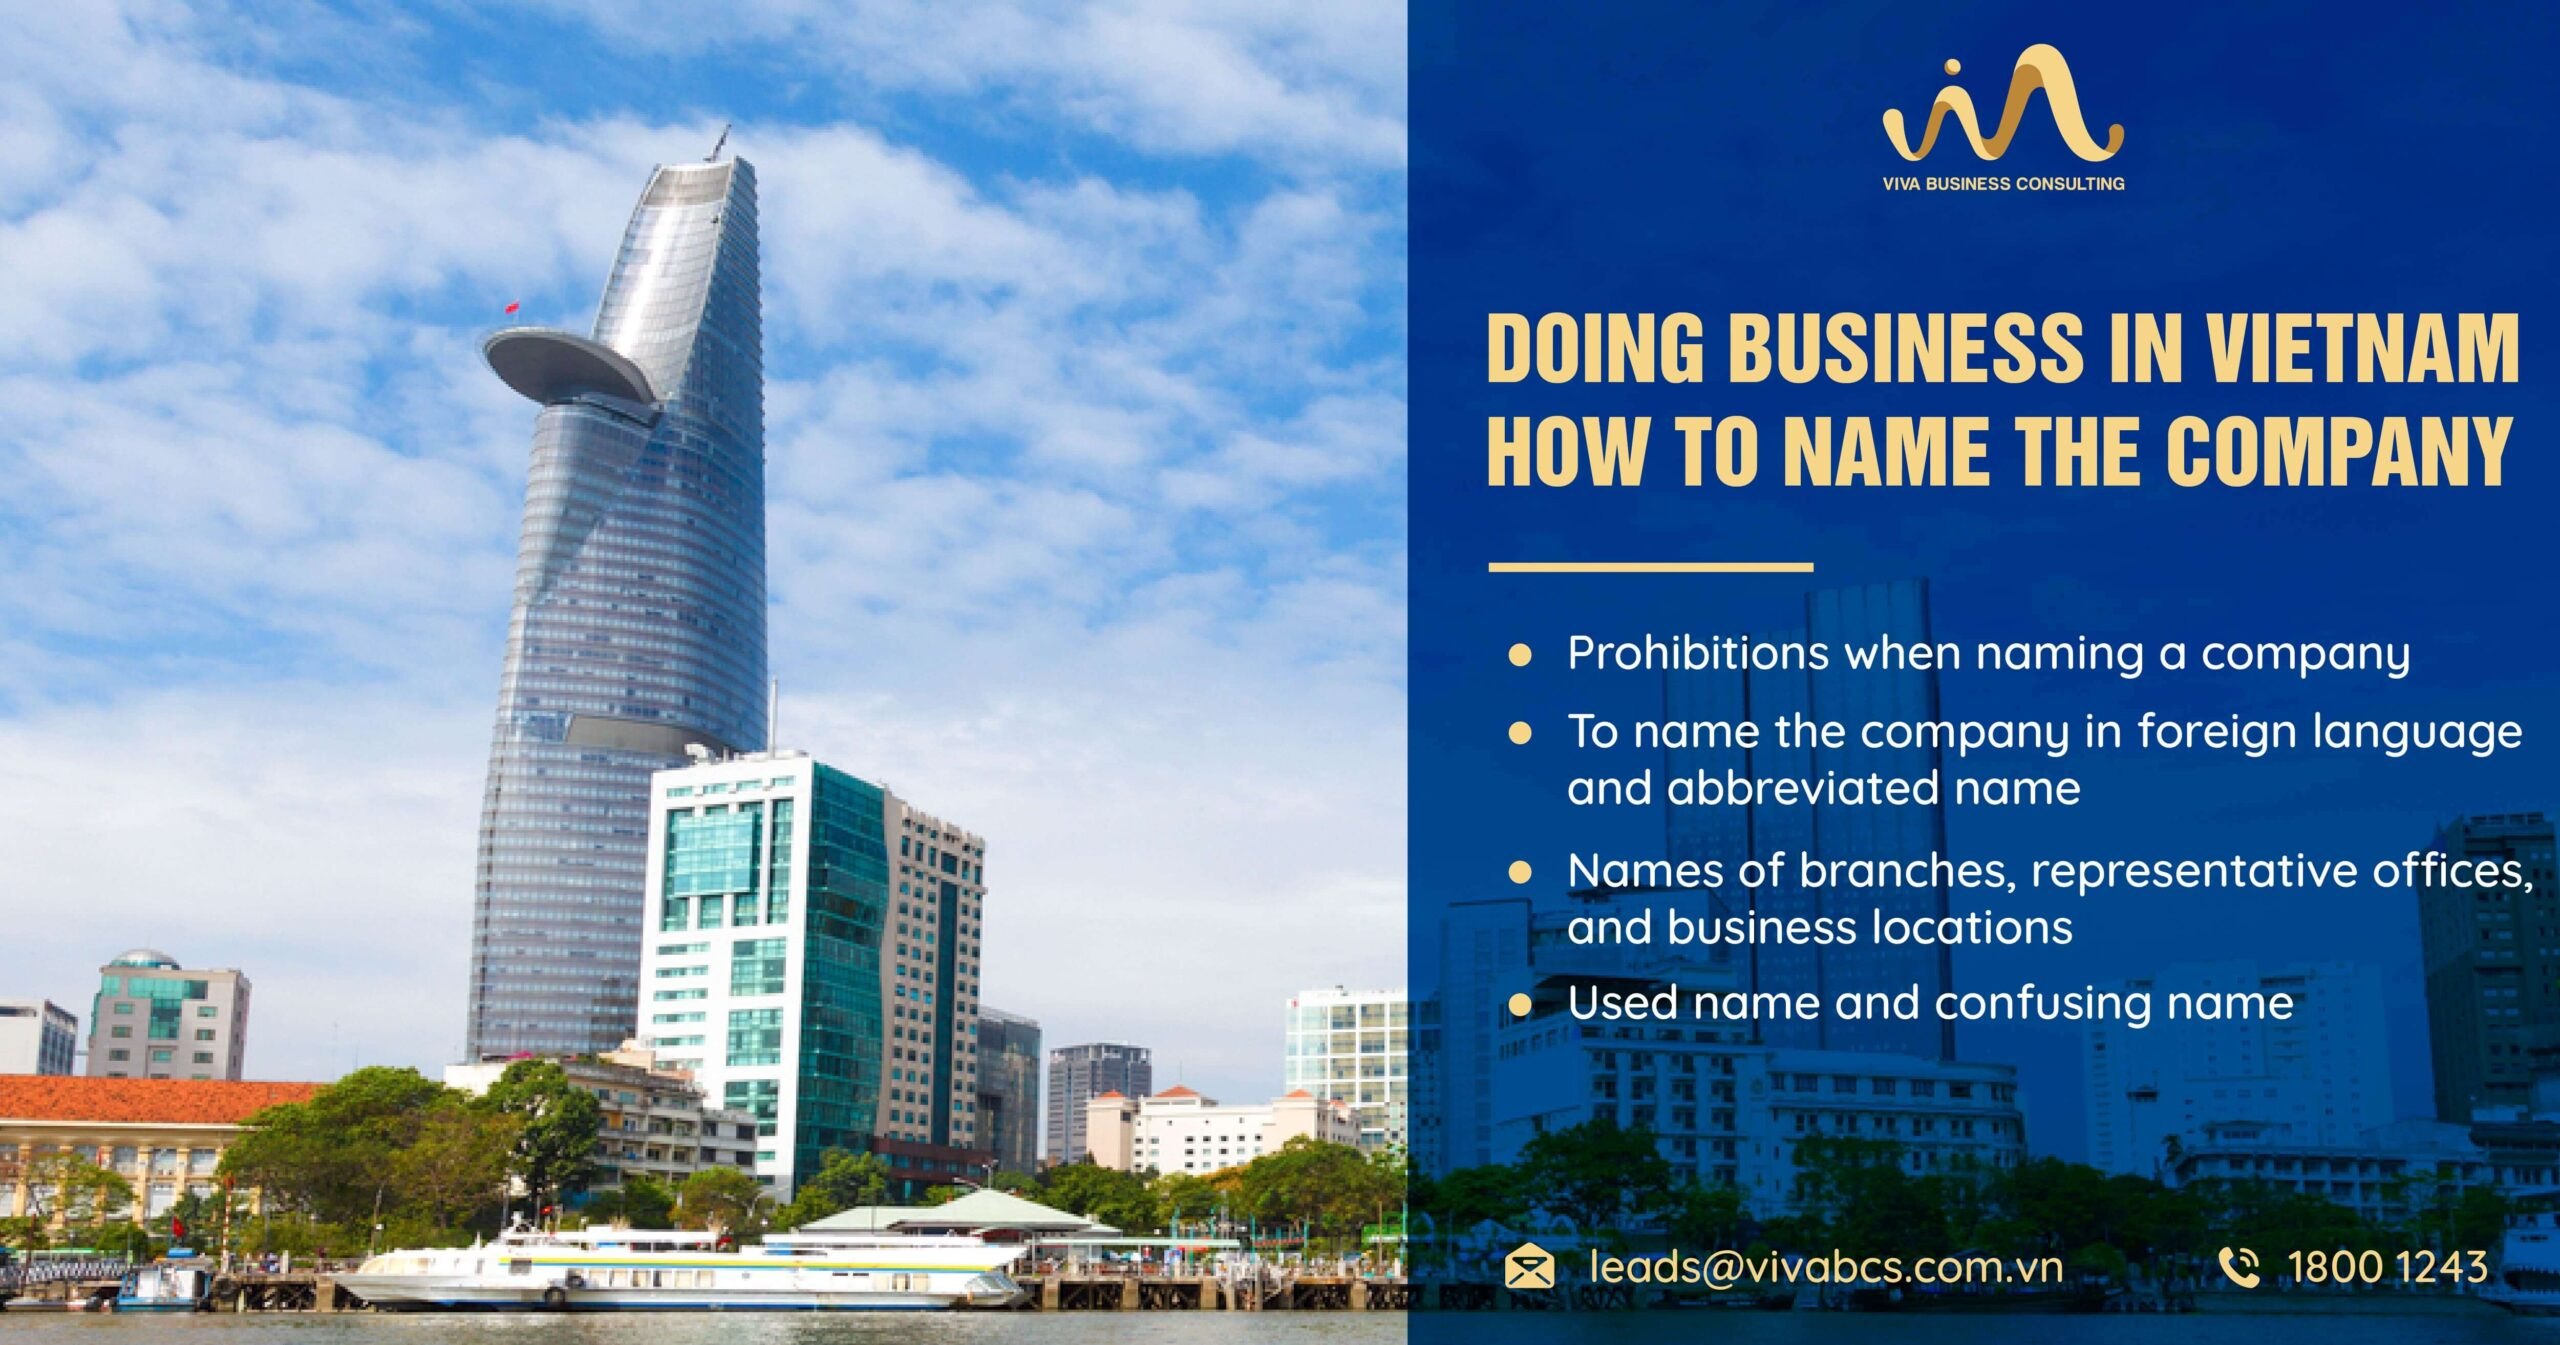 Doing business in Vietnam: How to name the company